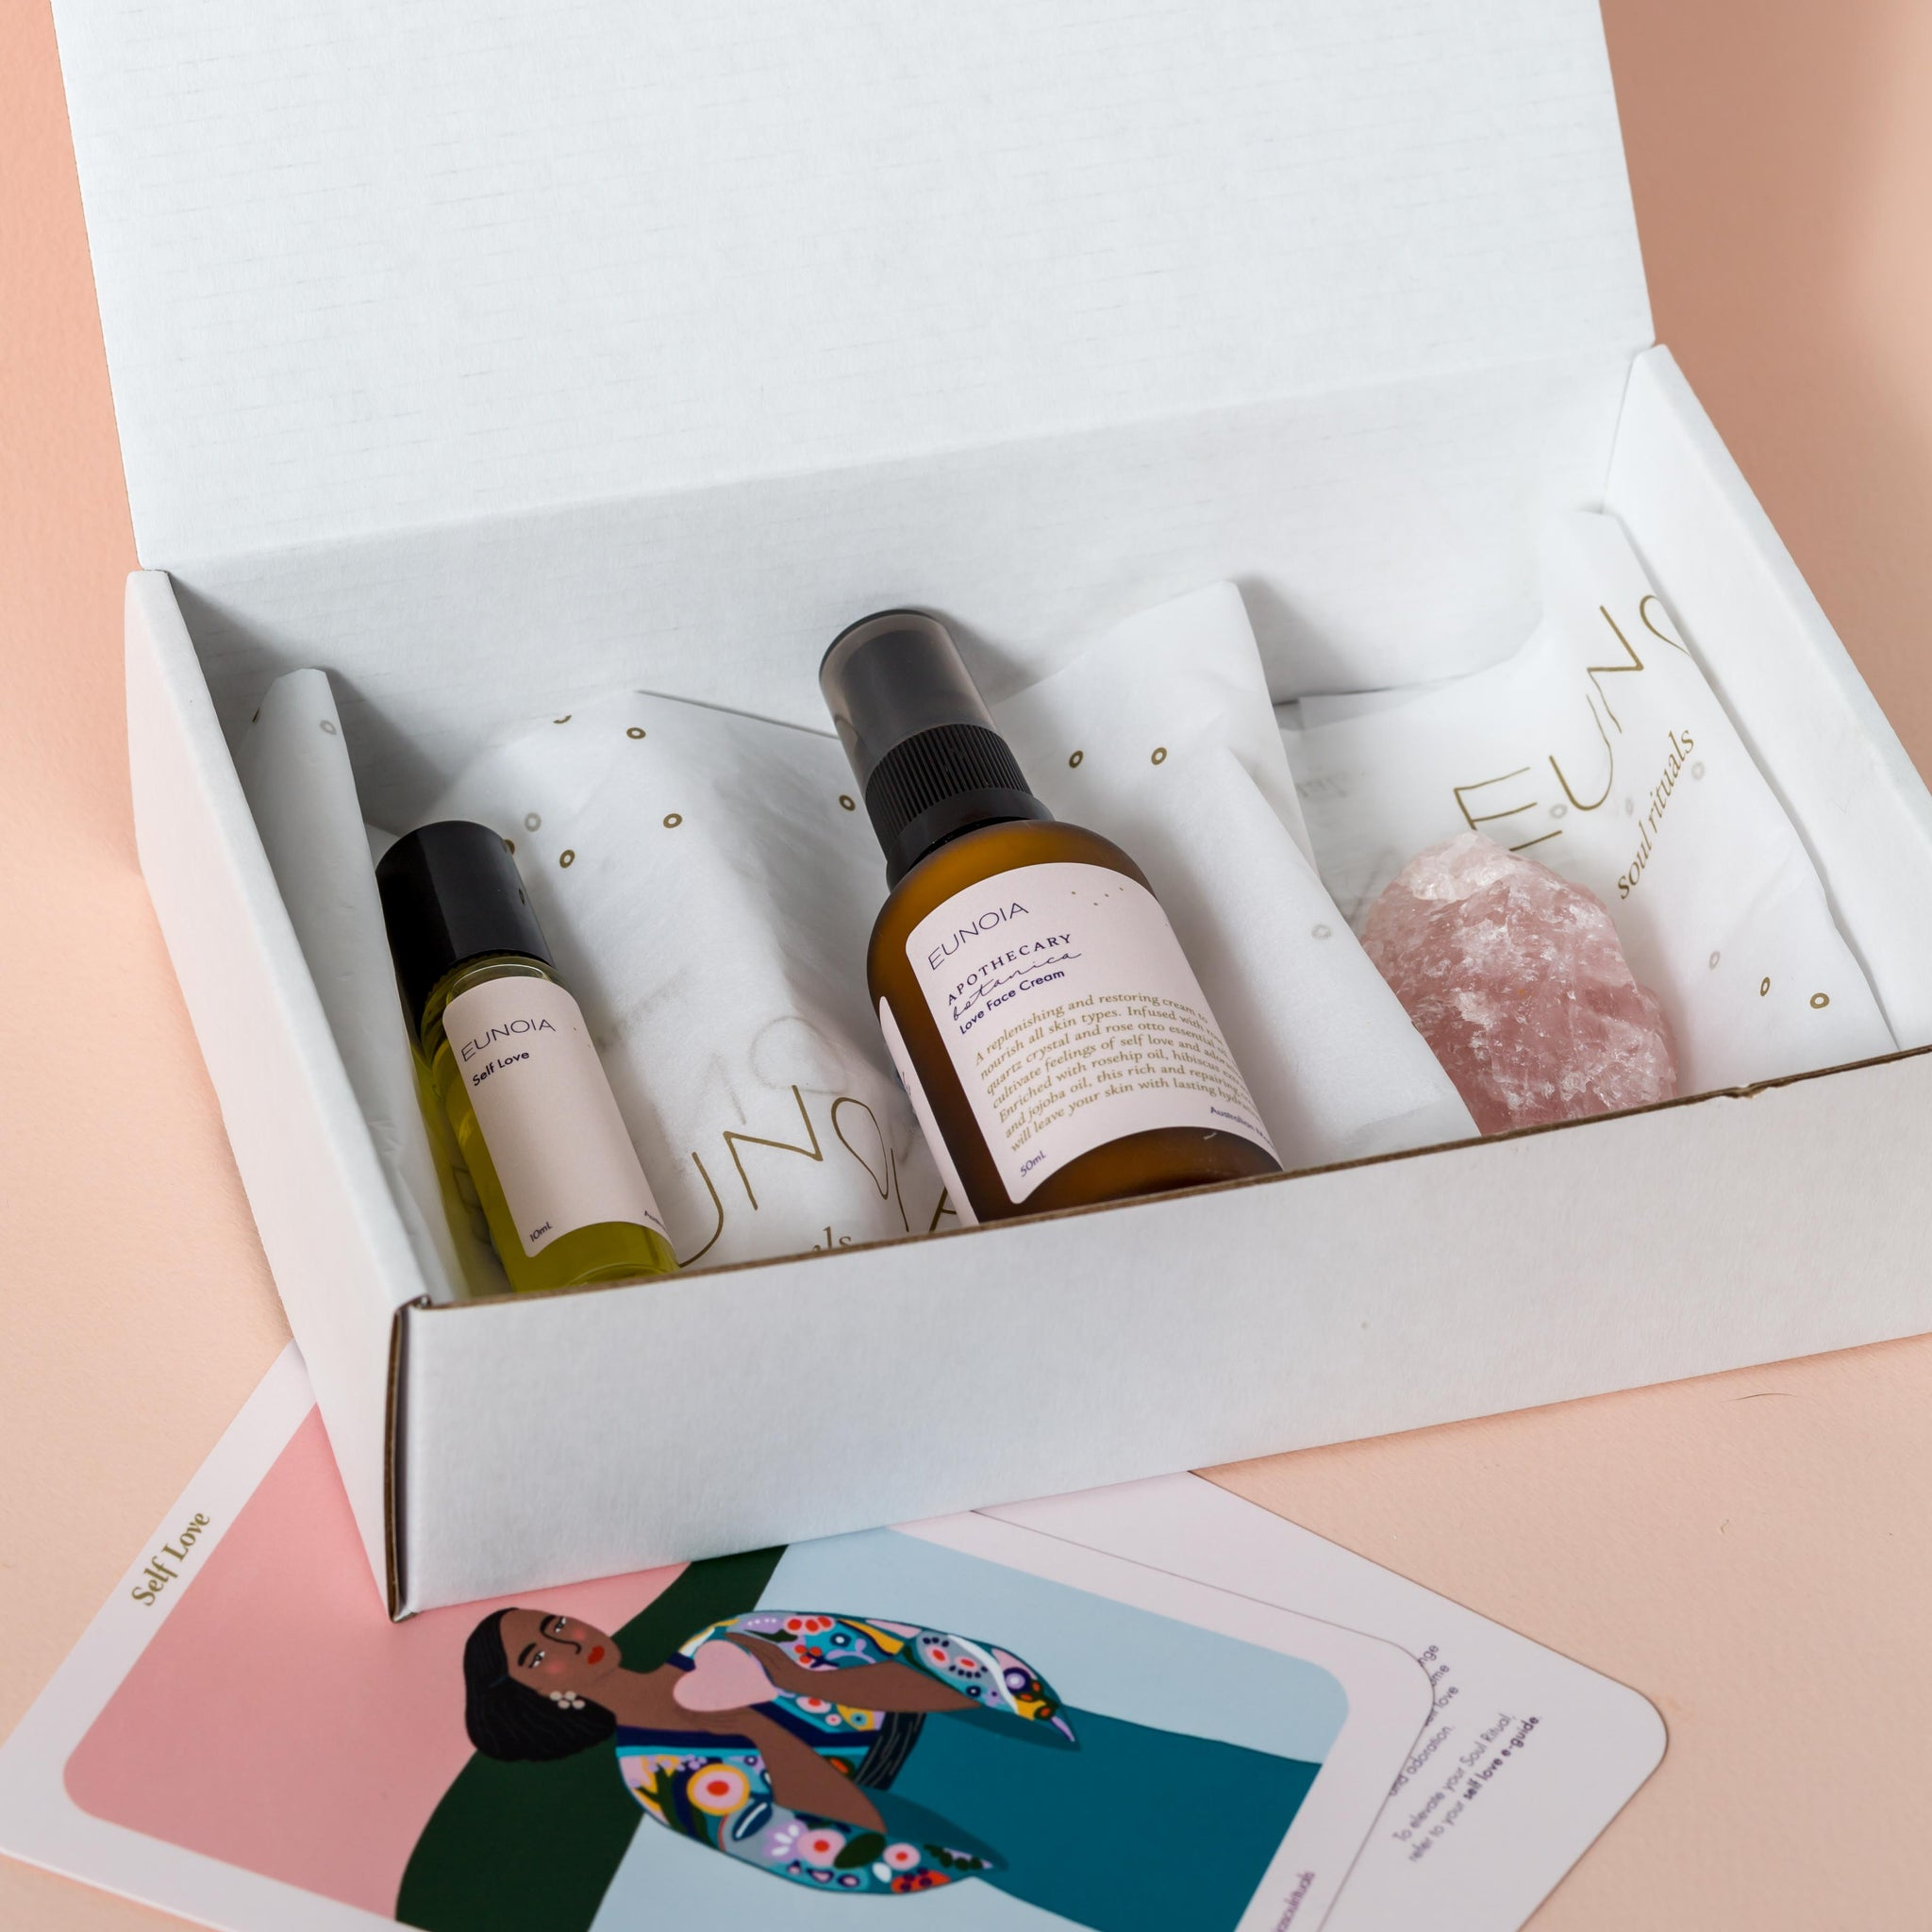 Self Love Pack: Apothecary Botanica